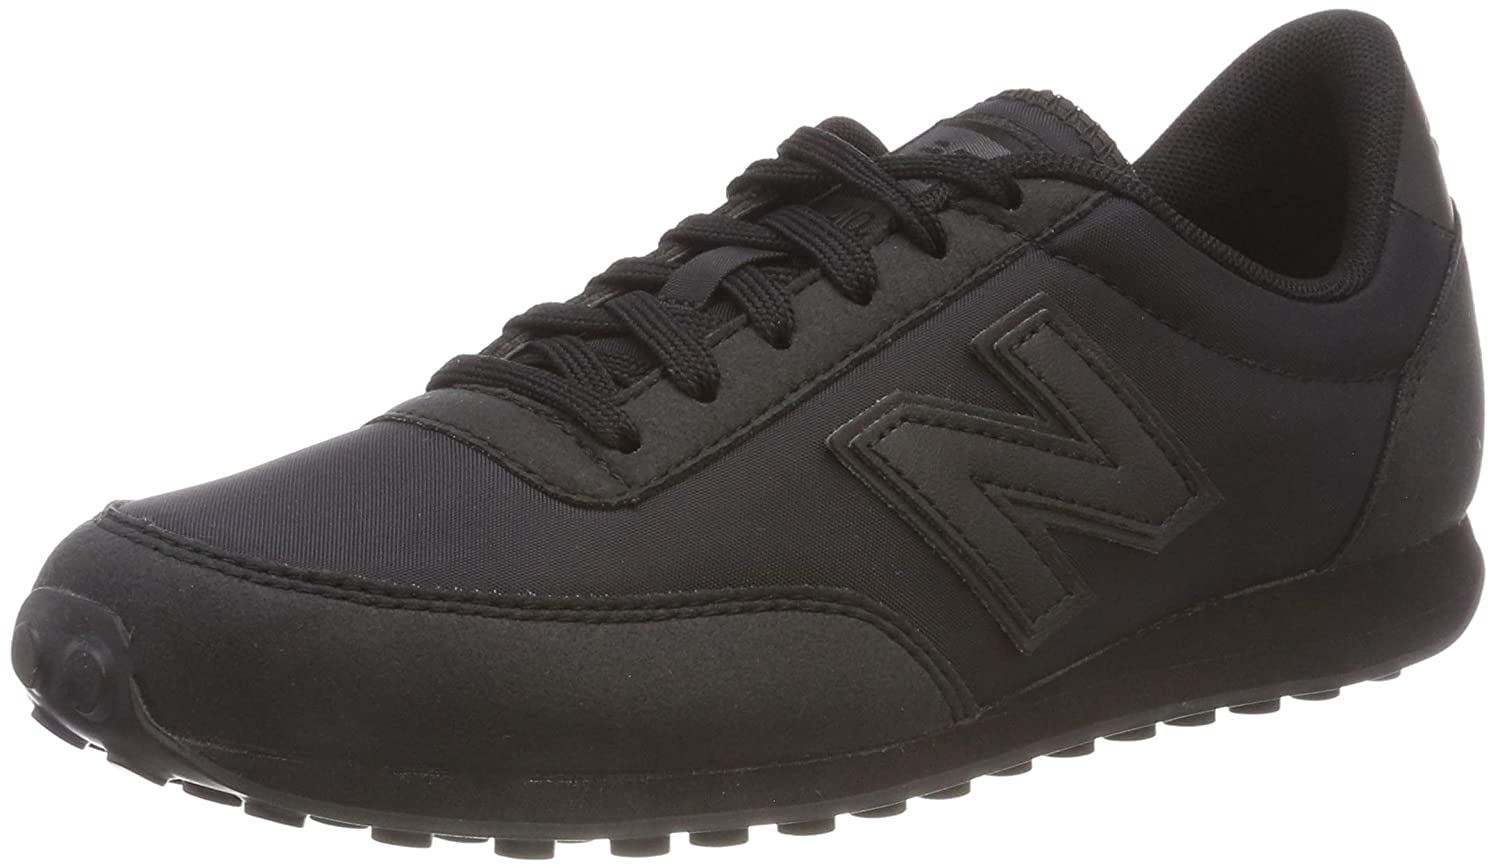 TALLA 44 EU. New Balance 410, Zapatillas Unisex Adulto